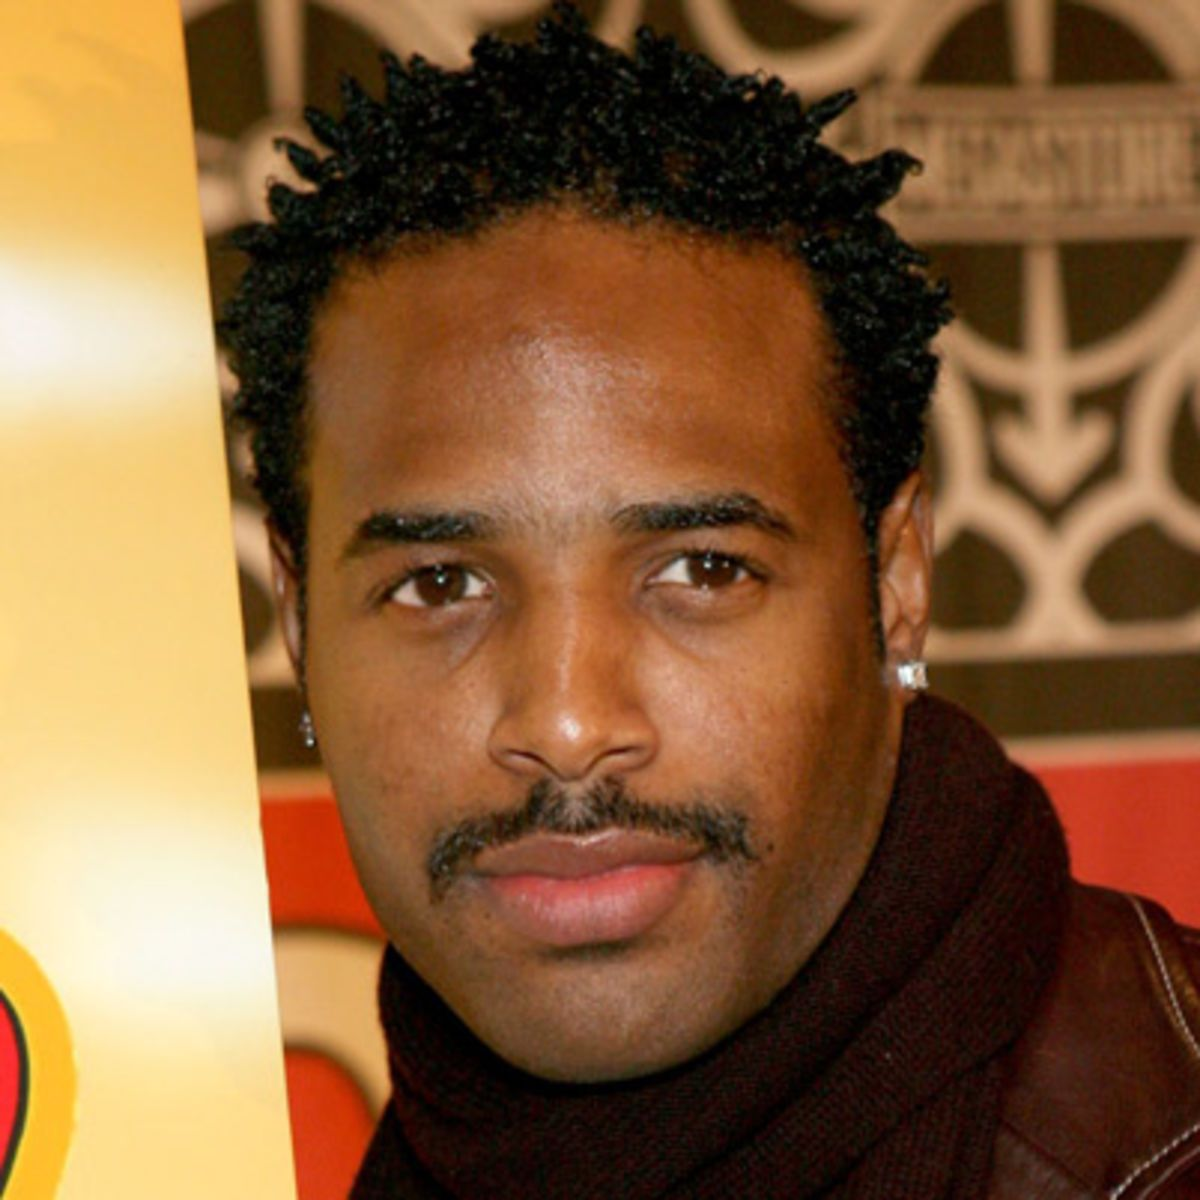 Shawn Wayans Shawn Was Born On 19 1 1971 In New York City New York